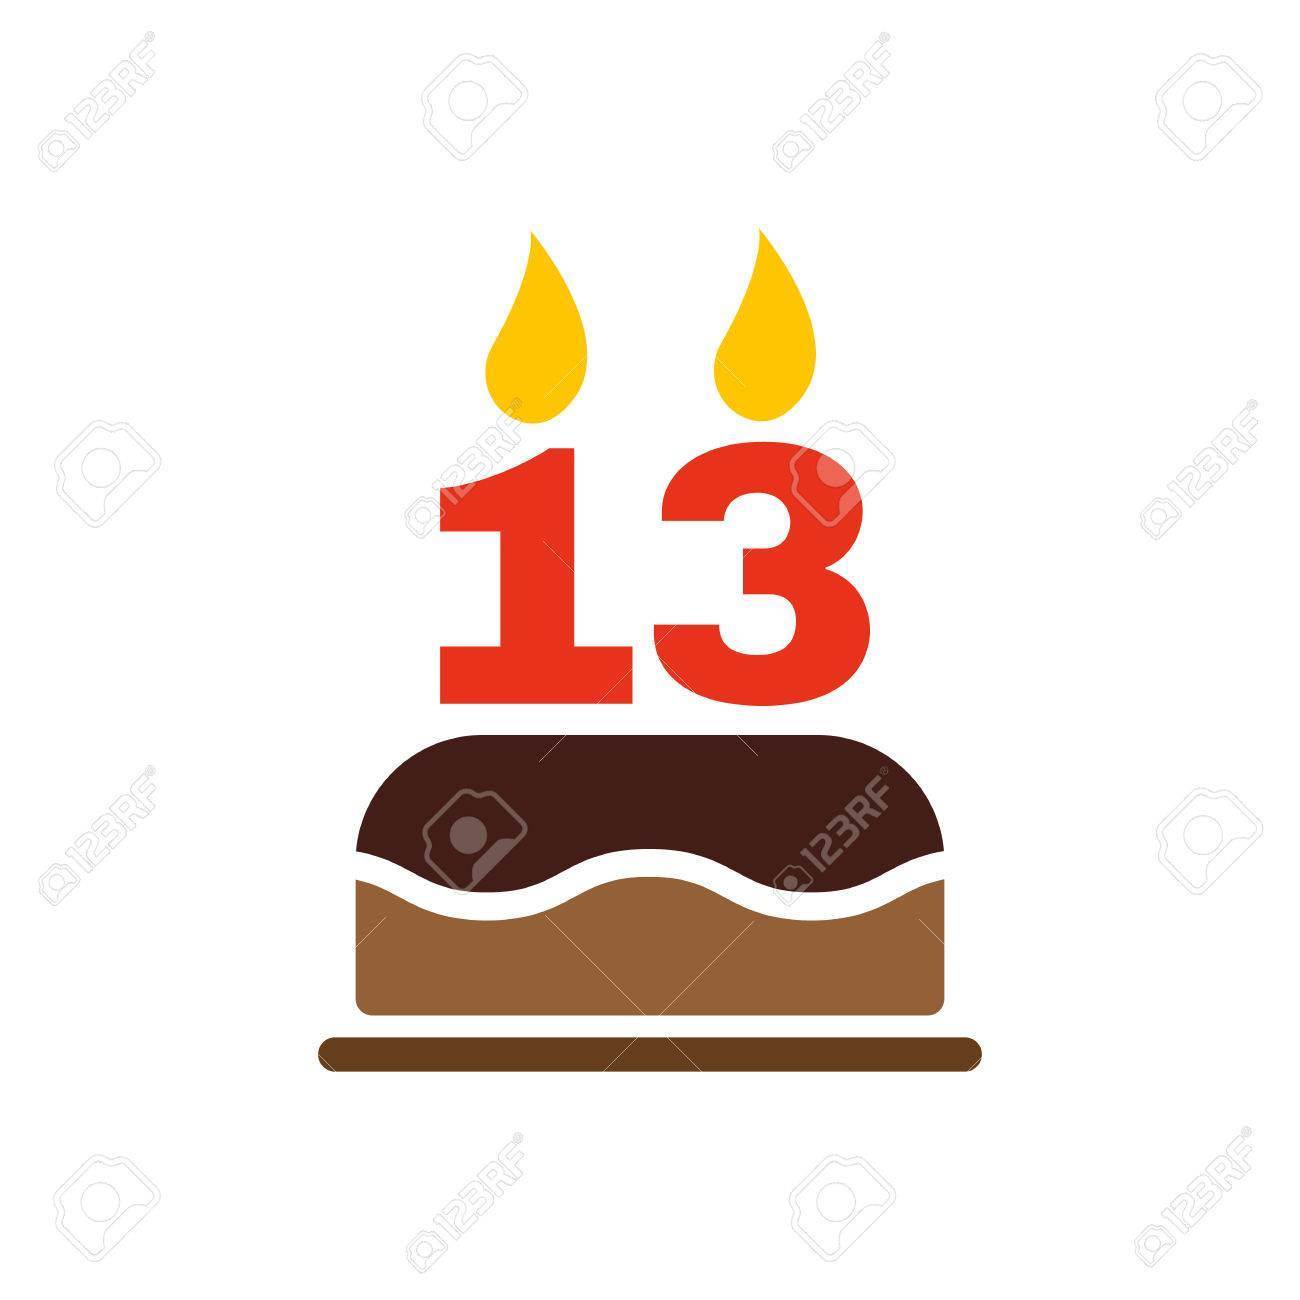 Sensational The Birthday Cake With Candles In The Form Of Number 13 Icon Personalised Birthday Cards Veneteletsinfo